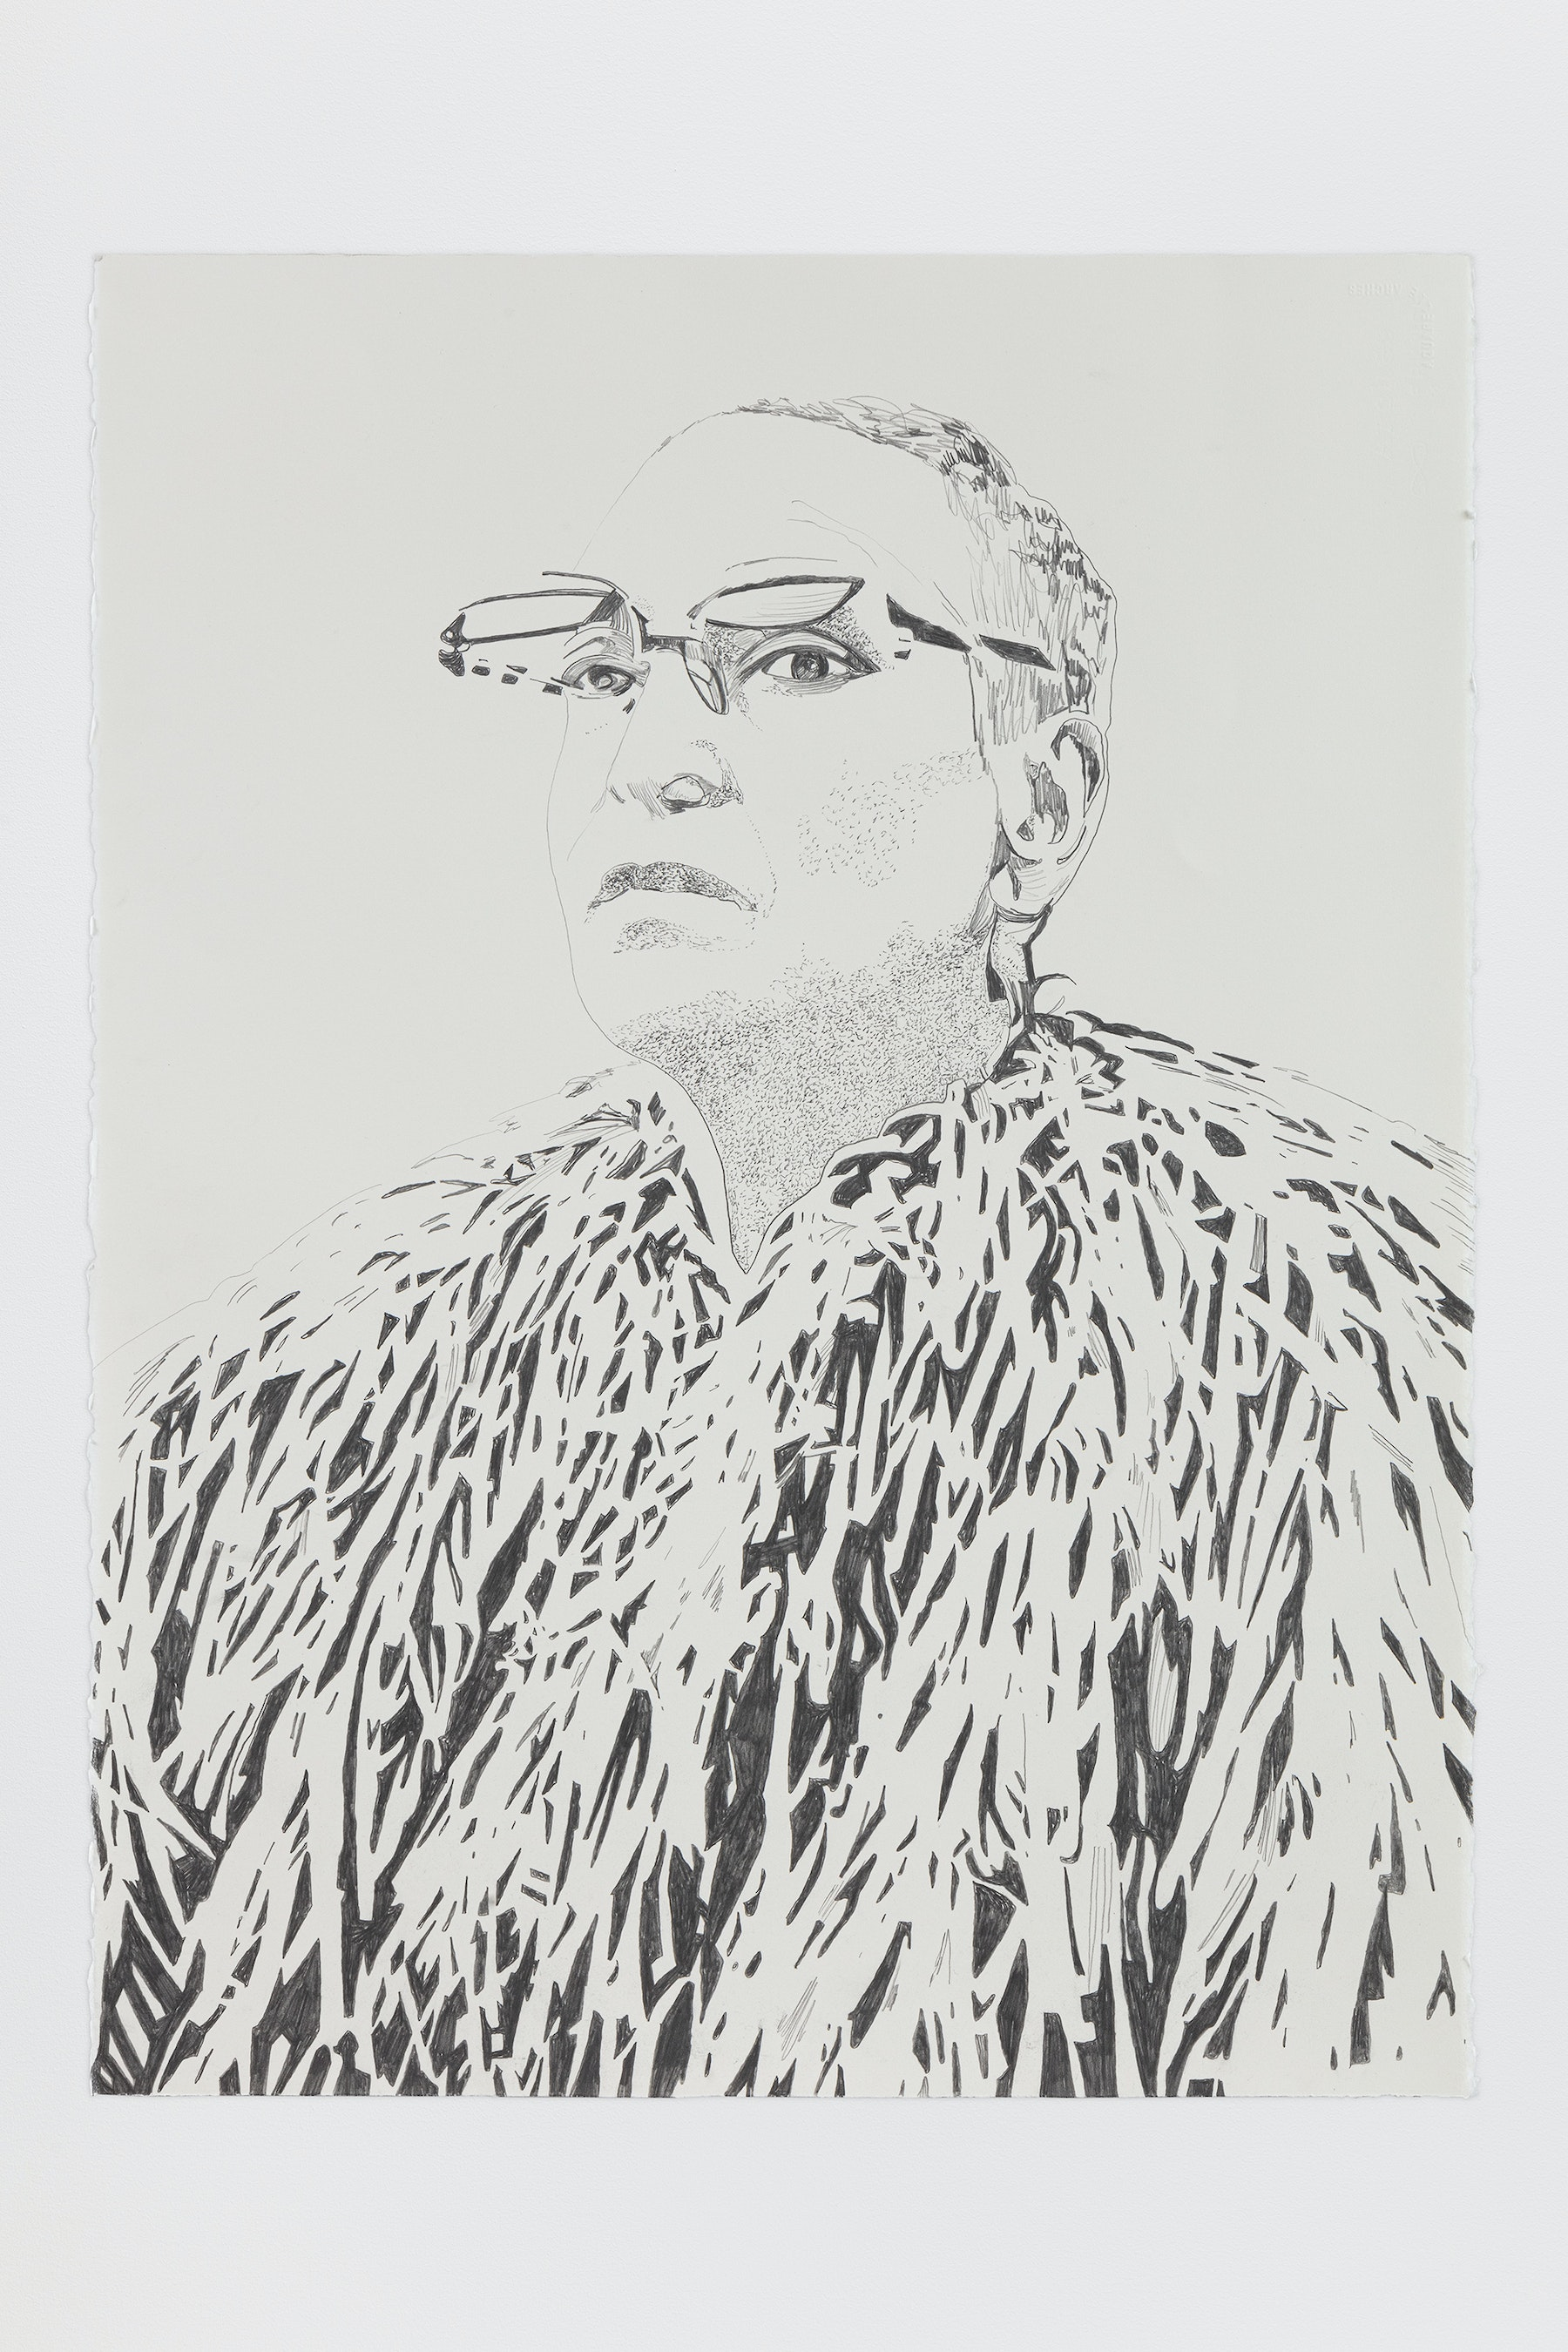 "Whitney Bedford ""Méret Oppenheim,"" 2020 Graphite on Arches Paper 30 x 22"" [HxW] (76.2 x 55.88 cm) Inventory #BED386 Courtesy of the artist and Vielmetter Los Angeles Photo credit: Evan Bedford"